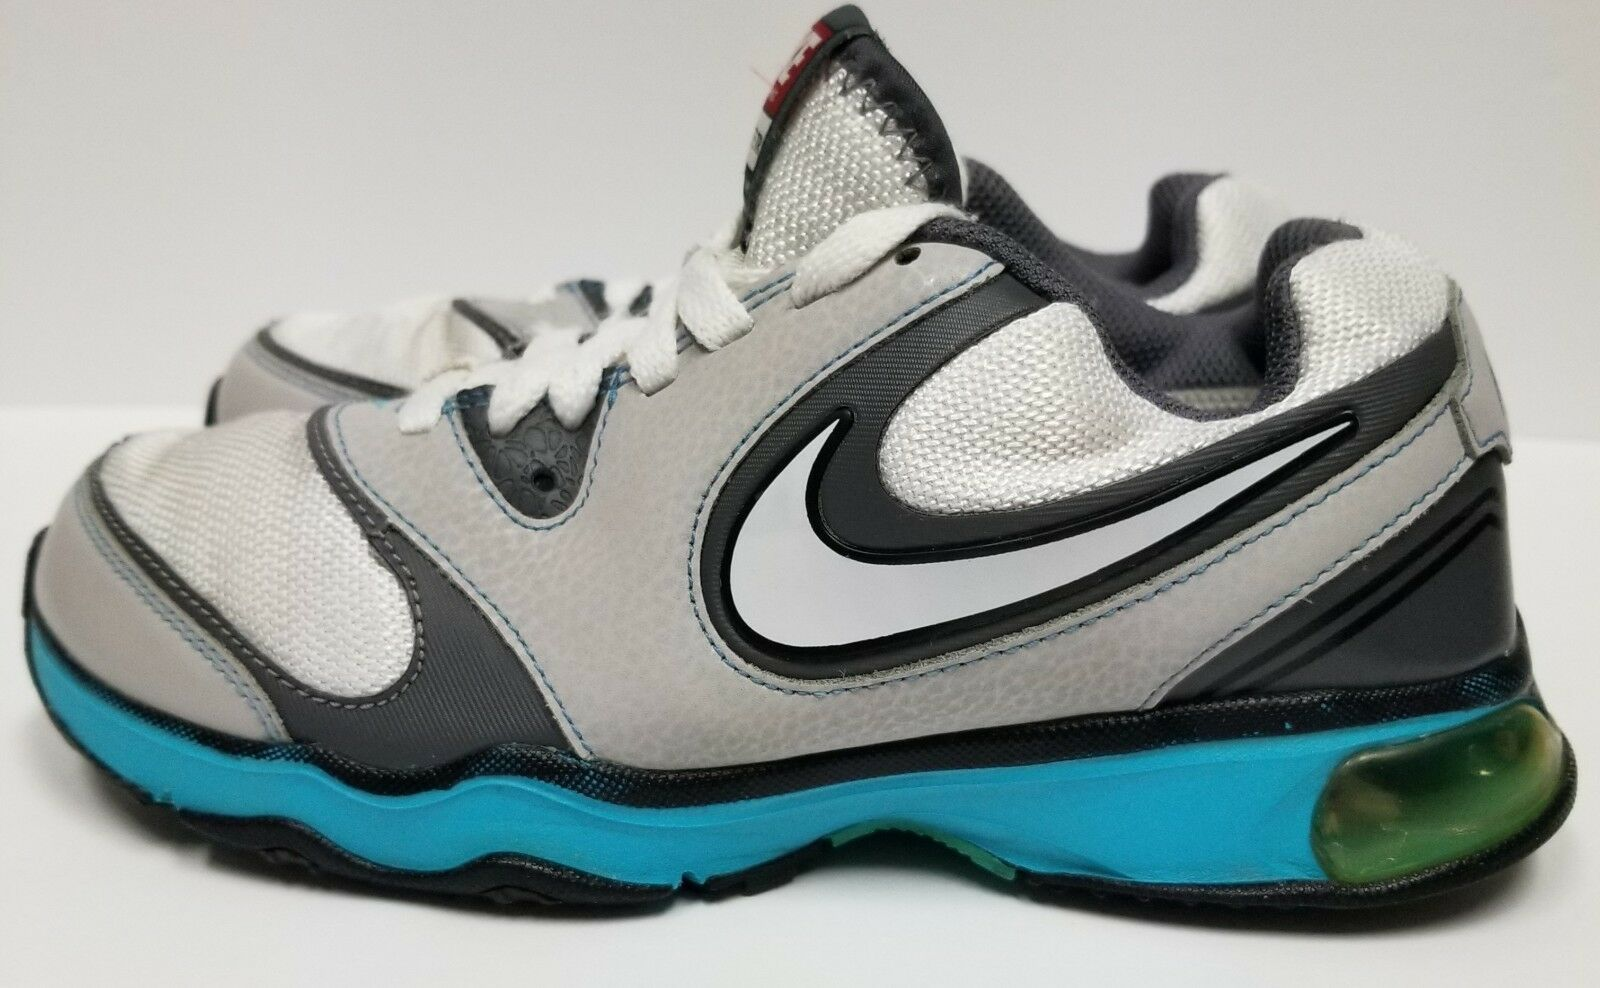 Nike Air Compete TR, Unisex Comfortable  best-selling model of the brand